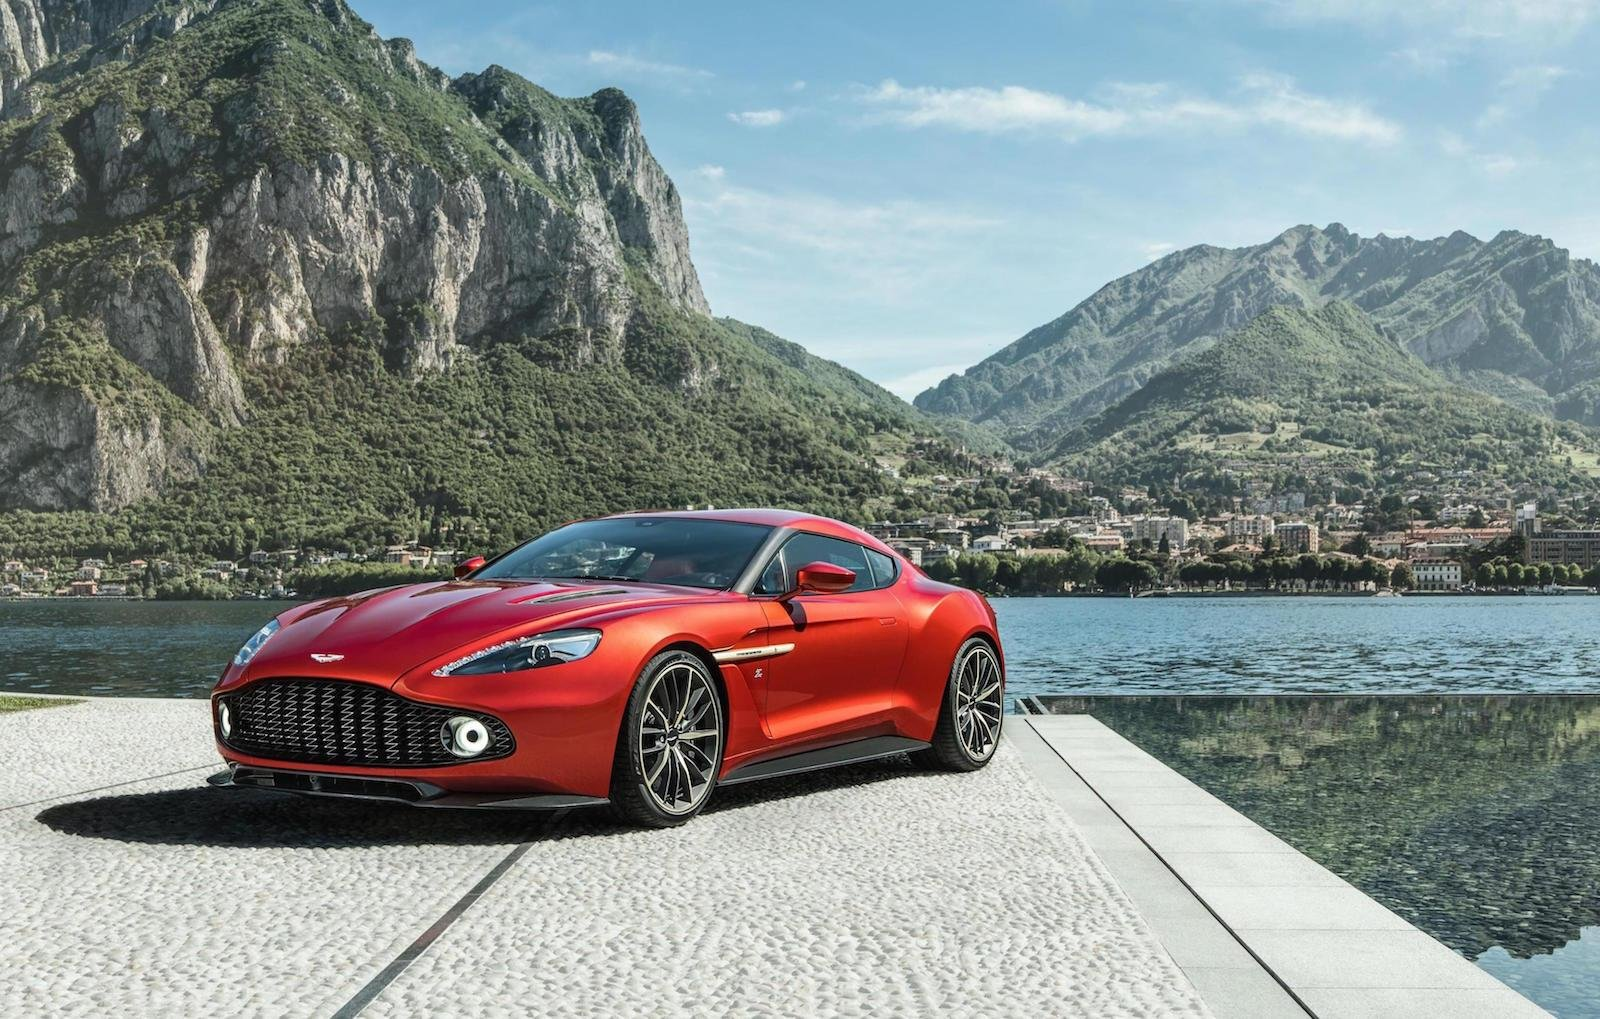 Latest Aston Martin Vanquish Zagato Production Car Revealed Free Download